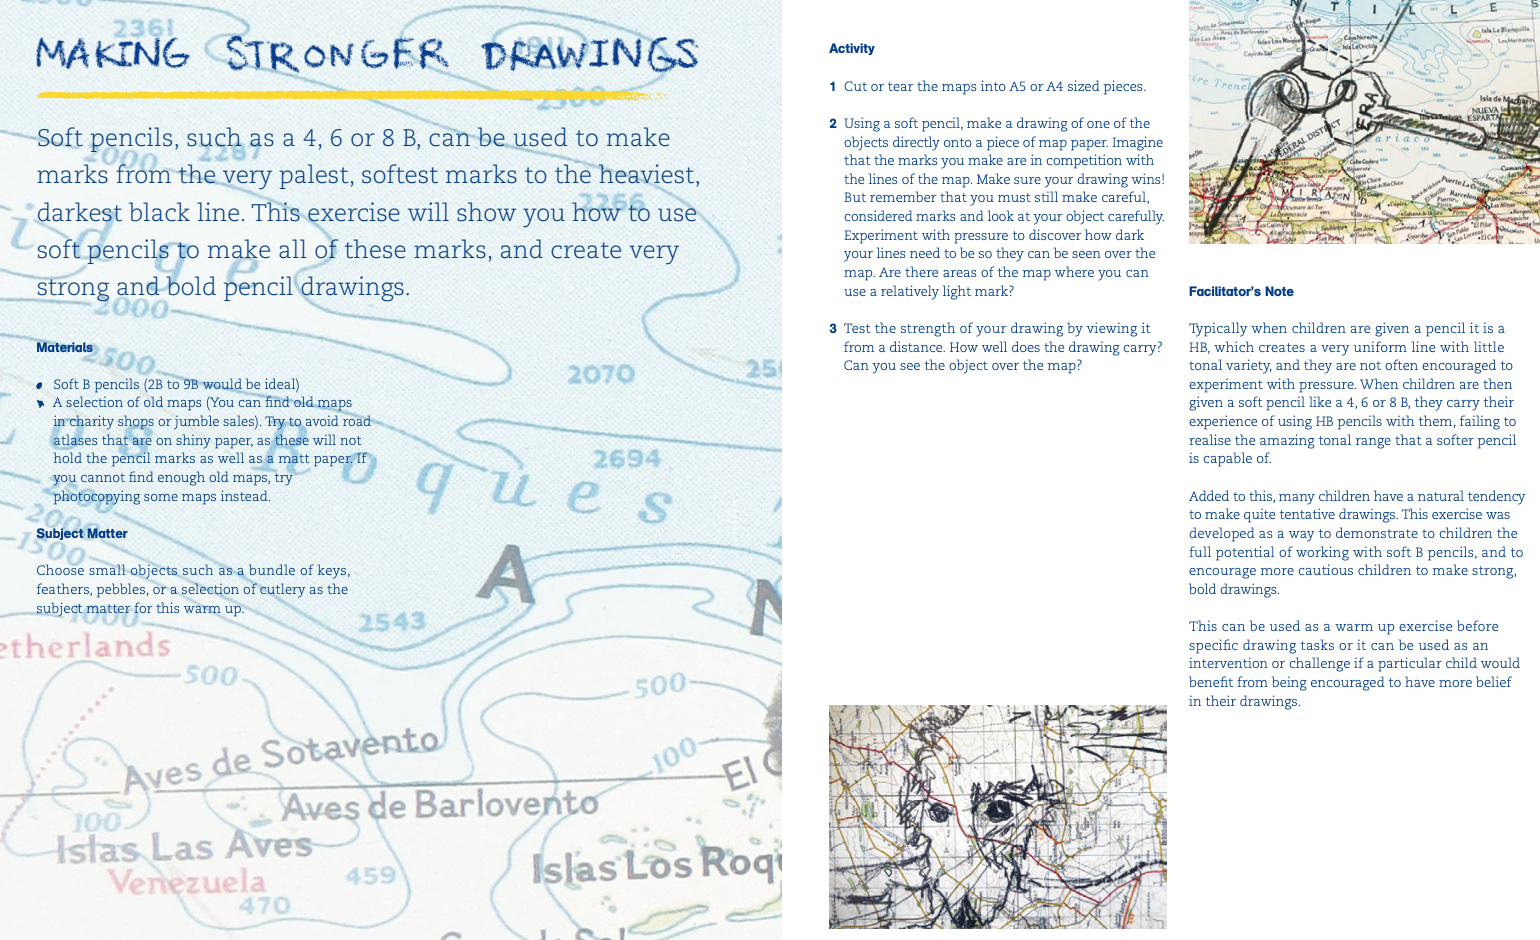 Take part in our latest Drawing Challenge - it's free and for everyone!